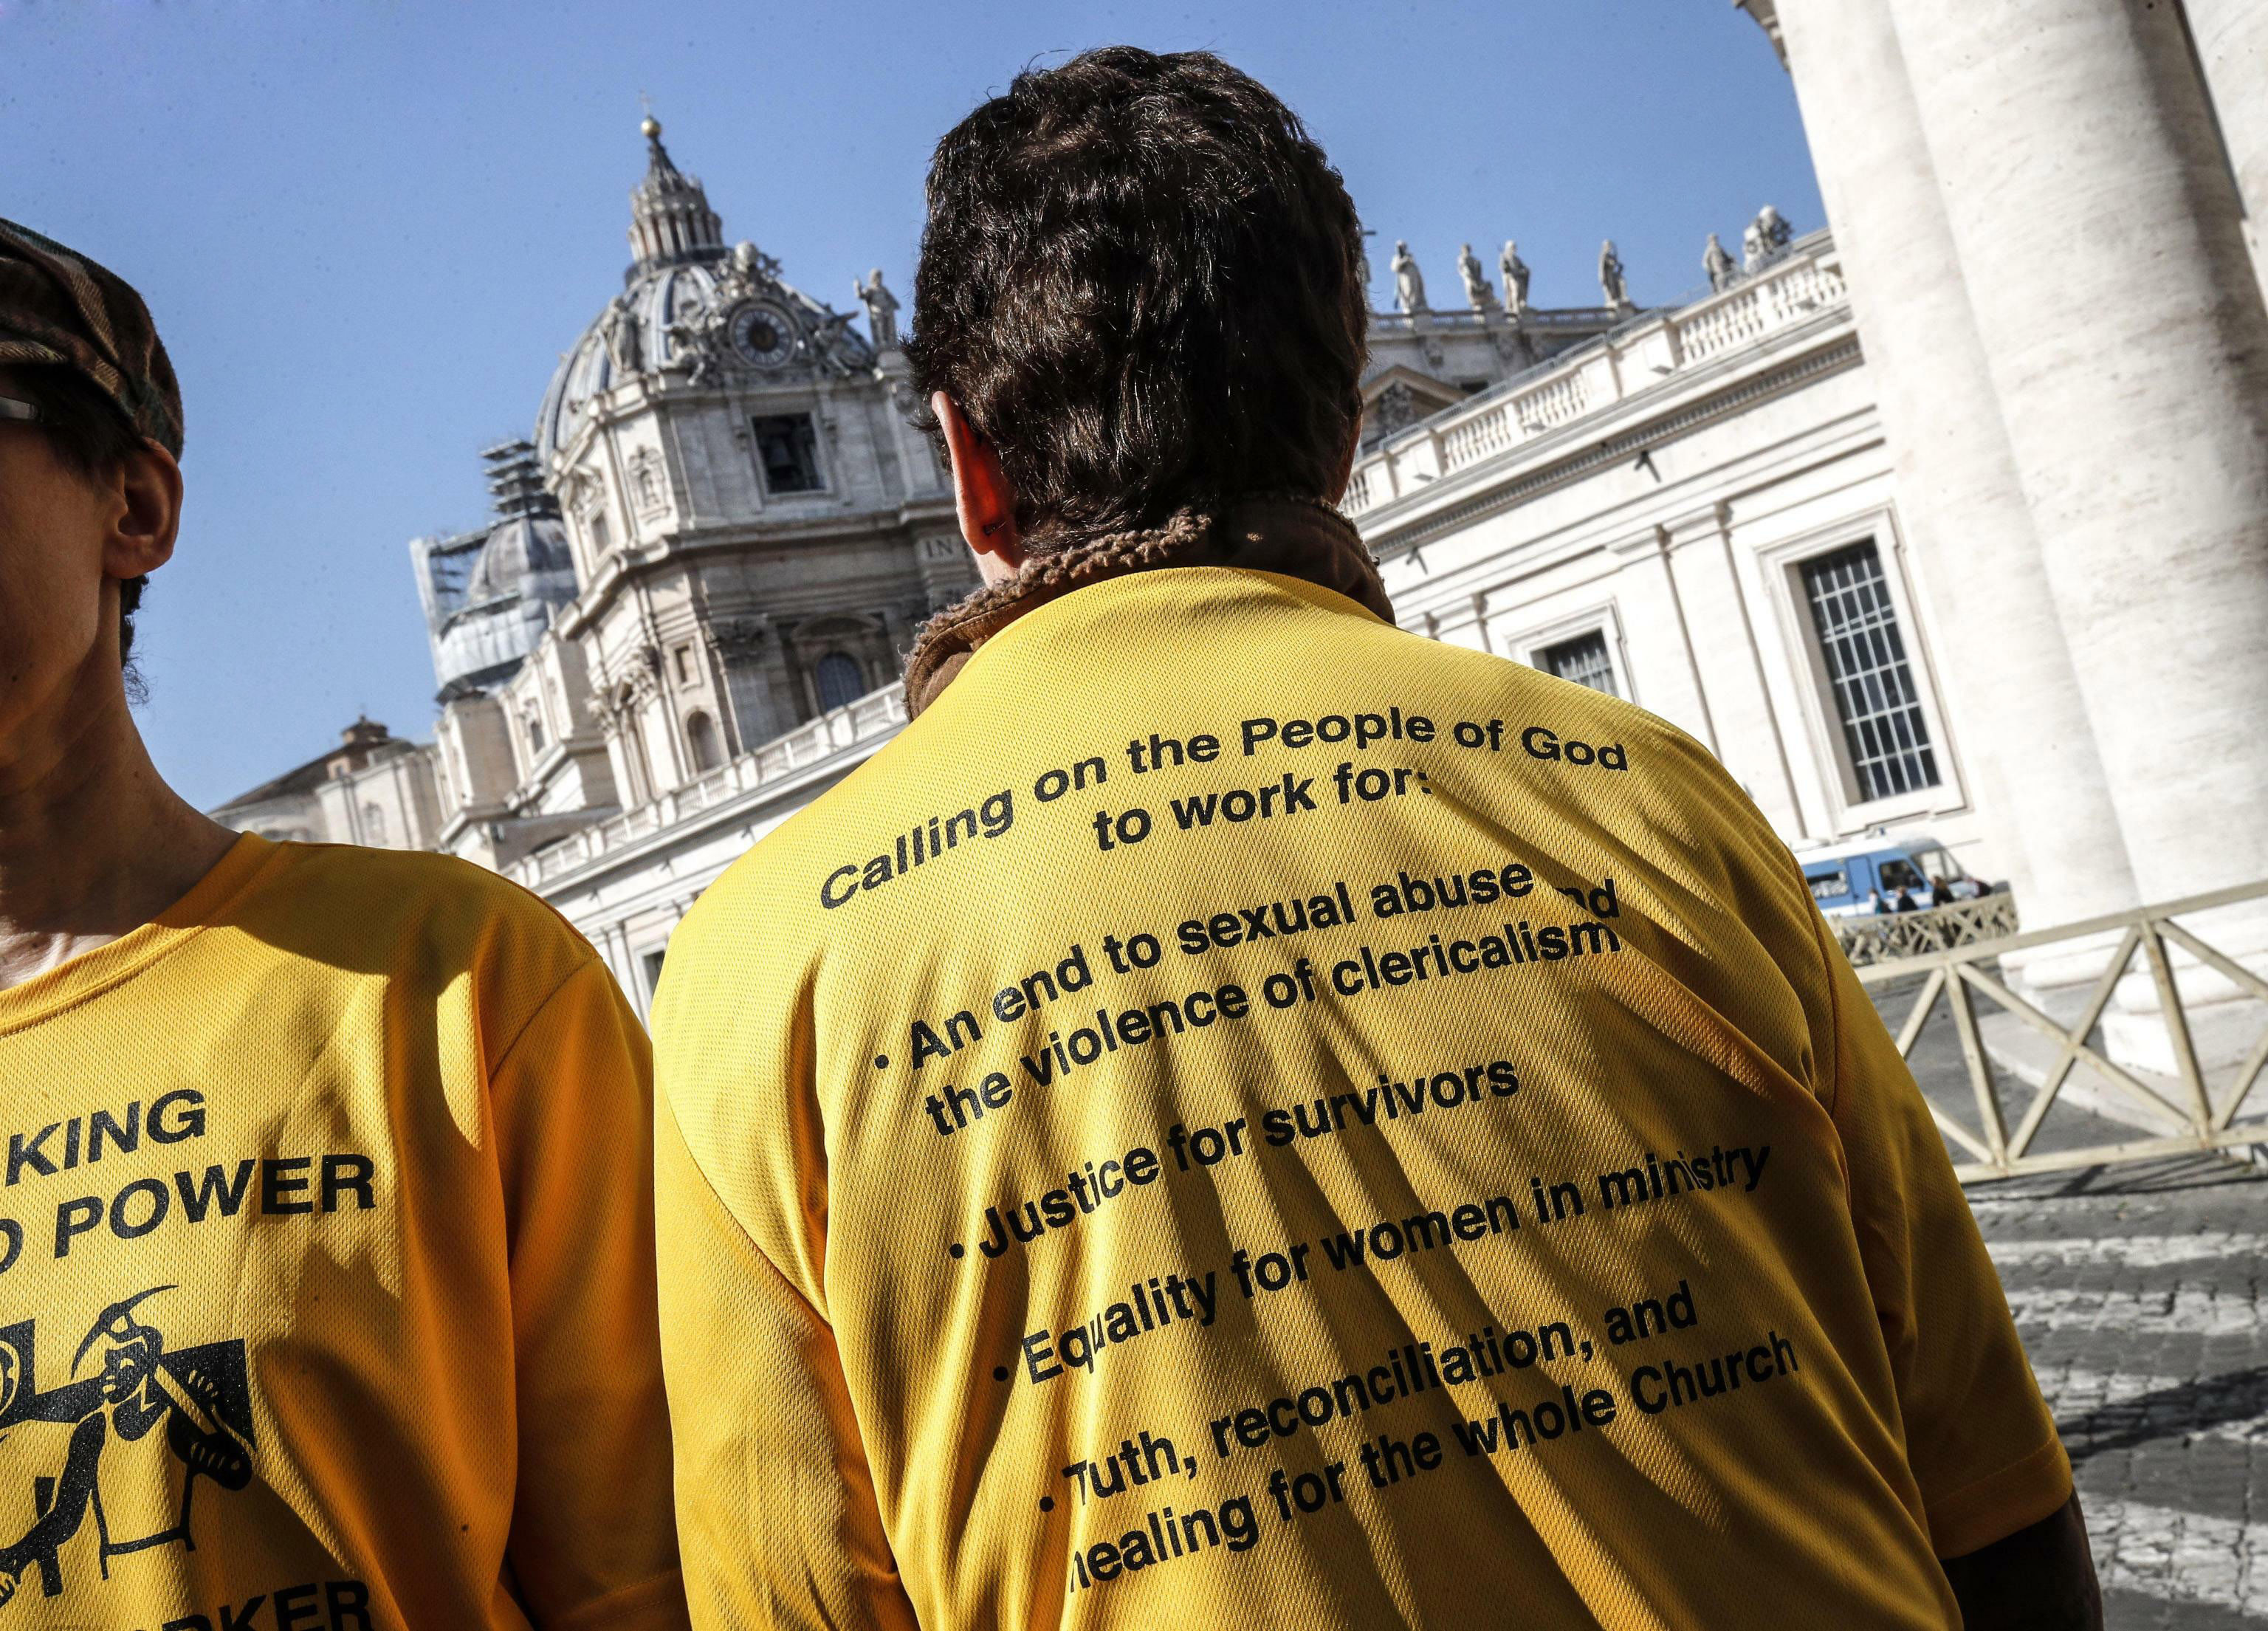 Demonstrators wear shirts as they stand outside St. Peter's Square on the day of the opening of a sex abuse within the Catholic church prevention summit, at the Vatican, Thursday, Feb. 21, 2019.  Pope Francis opened a landmark sex abuse prevention summit Thursday by warning senior Catholic figures that the faithful are demanding concrete action against predator priests and not just words of condemnation. (Giuseppe Lami/ANSA via AP)